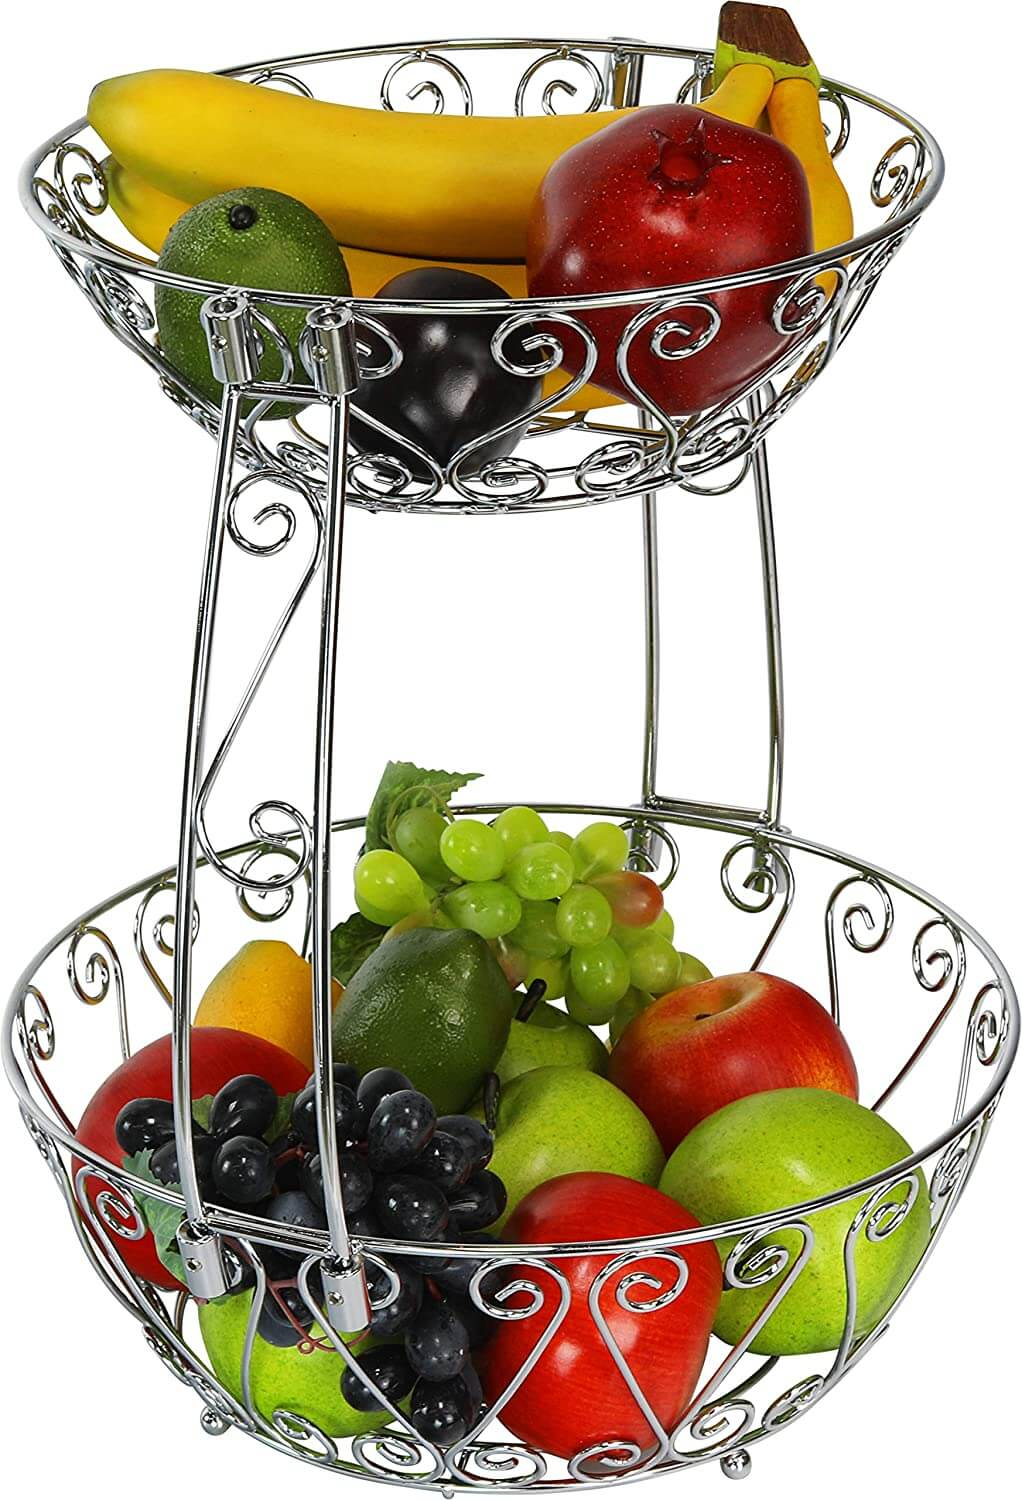 2-Tier Countertop Fruit Basket in Chrome